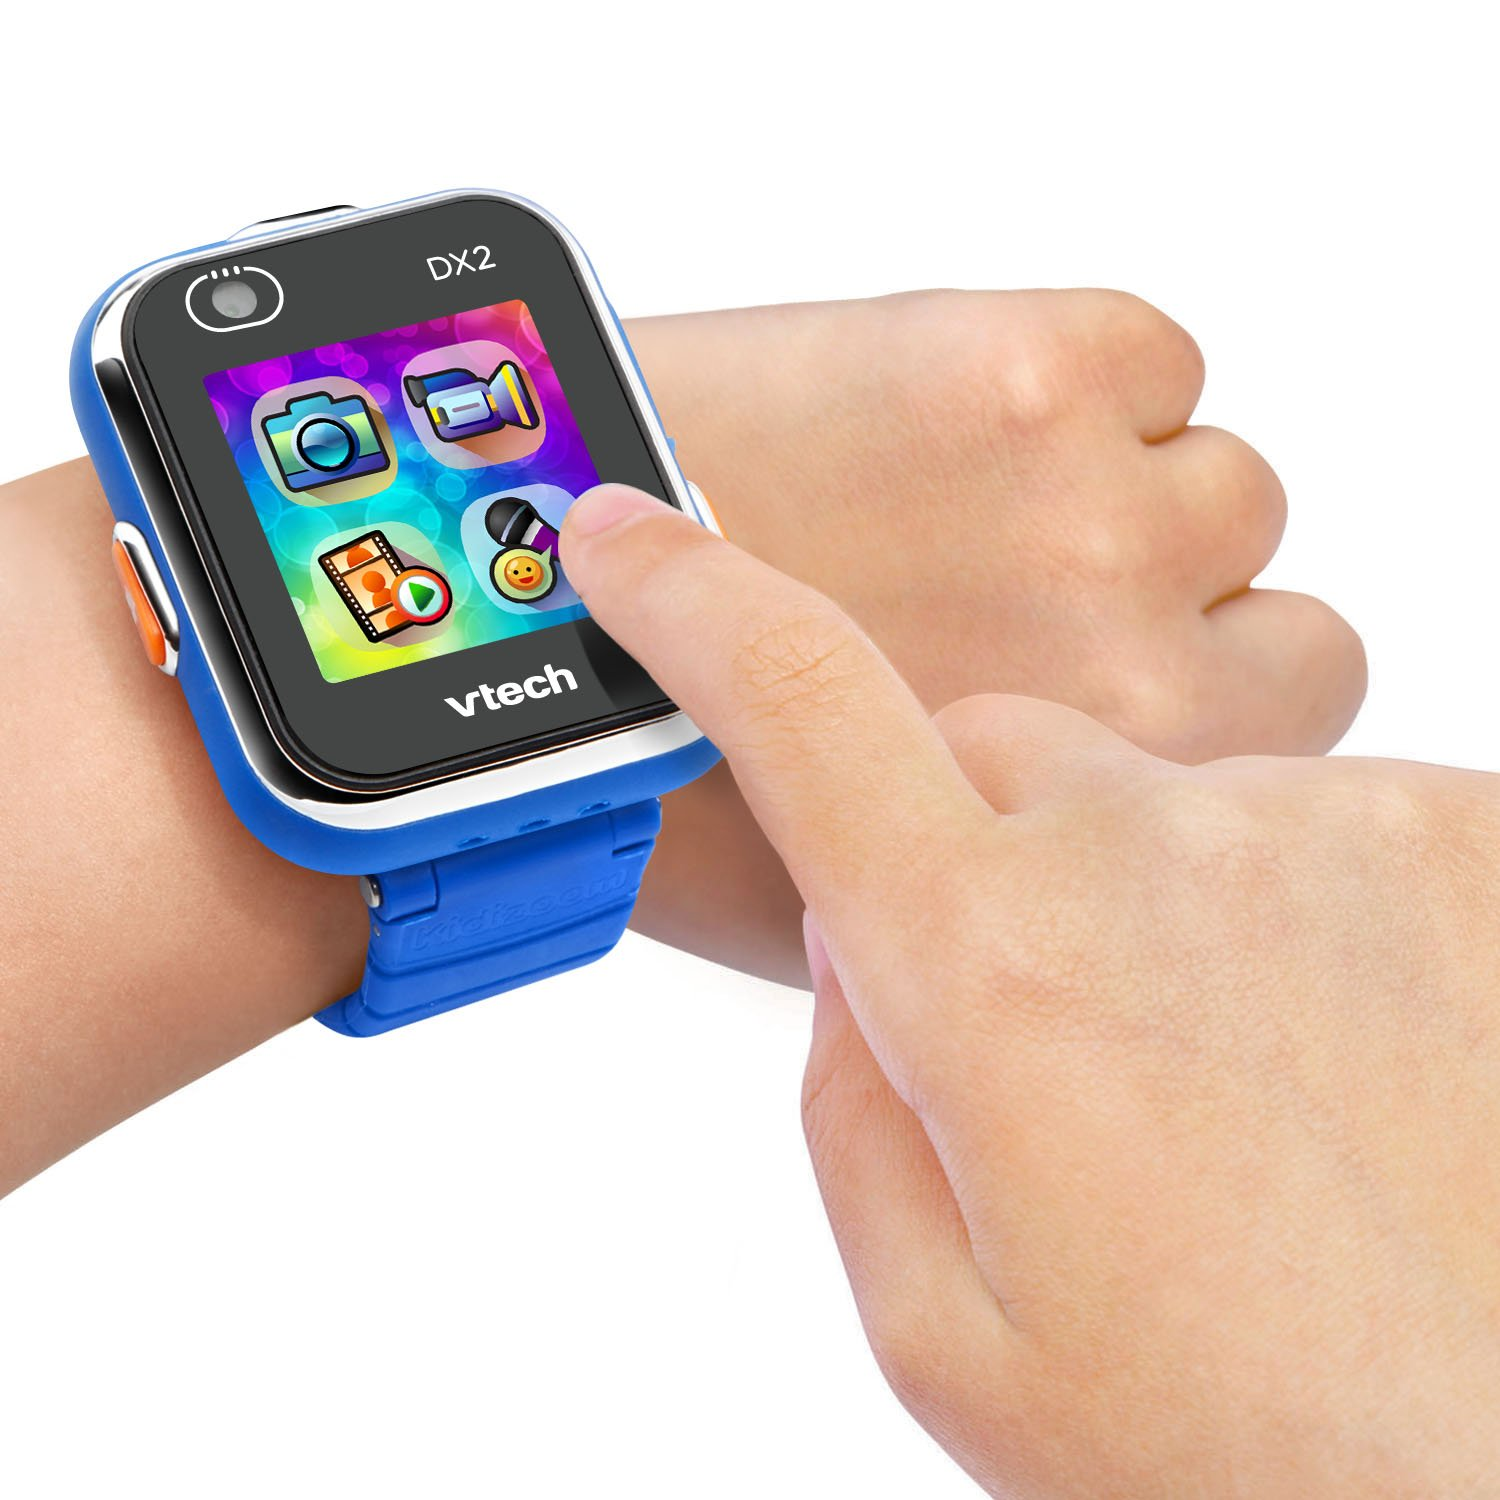 VTech Kidizoom Smartwatch DX2 Blue (Frustration Free Packaging) by VTech (Image #3)